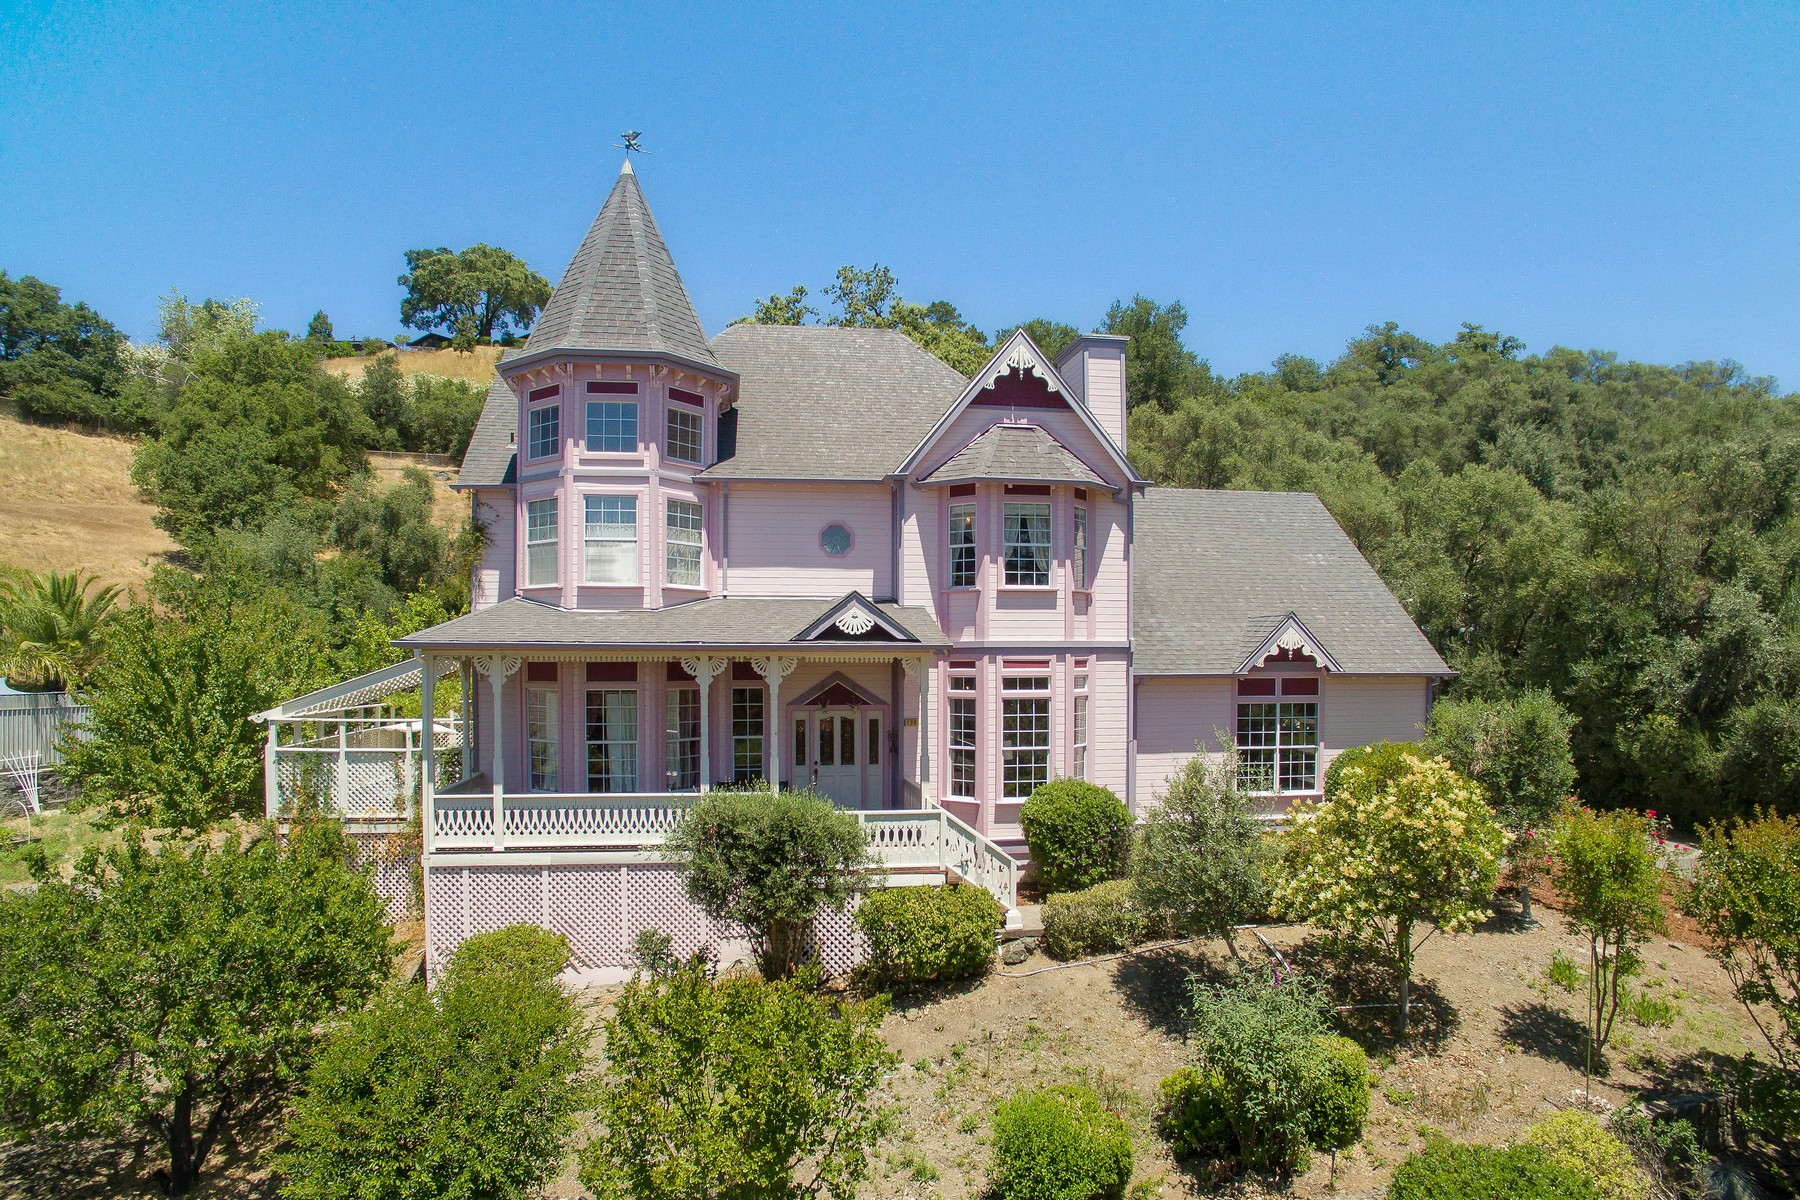 Single Family Homes for Sale at Cloverdale Victorian 130 Oakbrook Lane Cloverdale, California 95425 United States